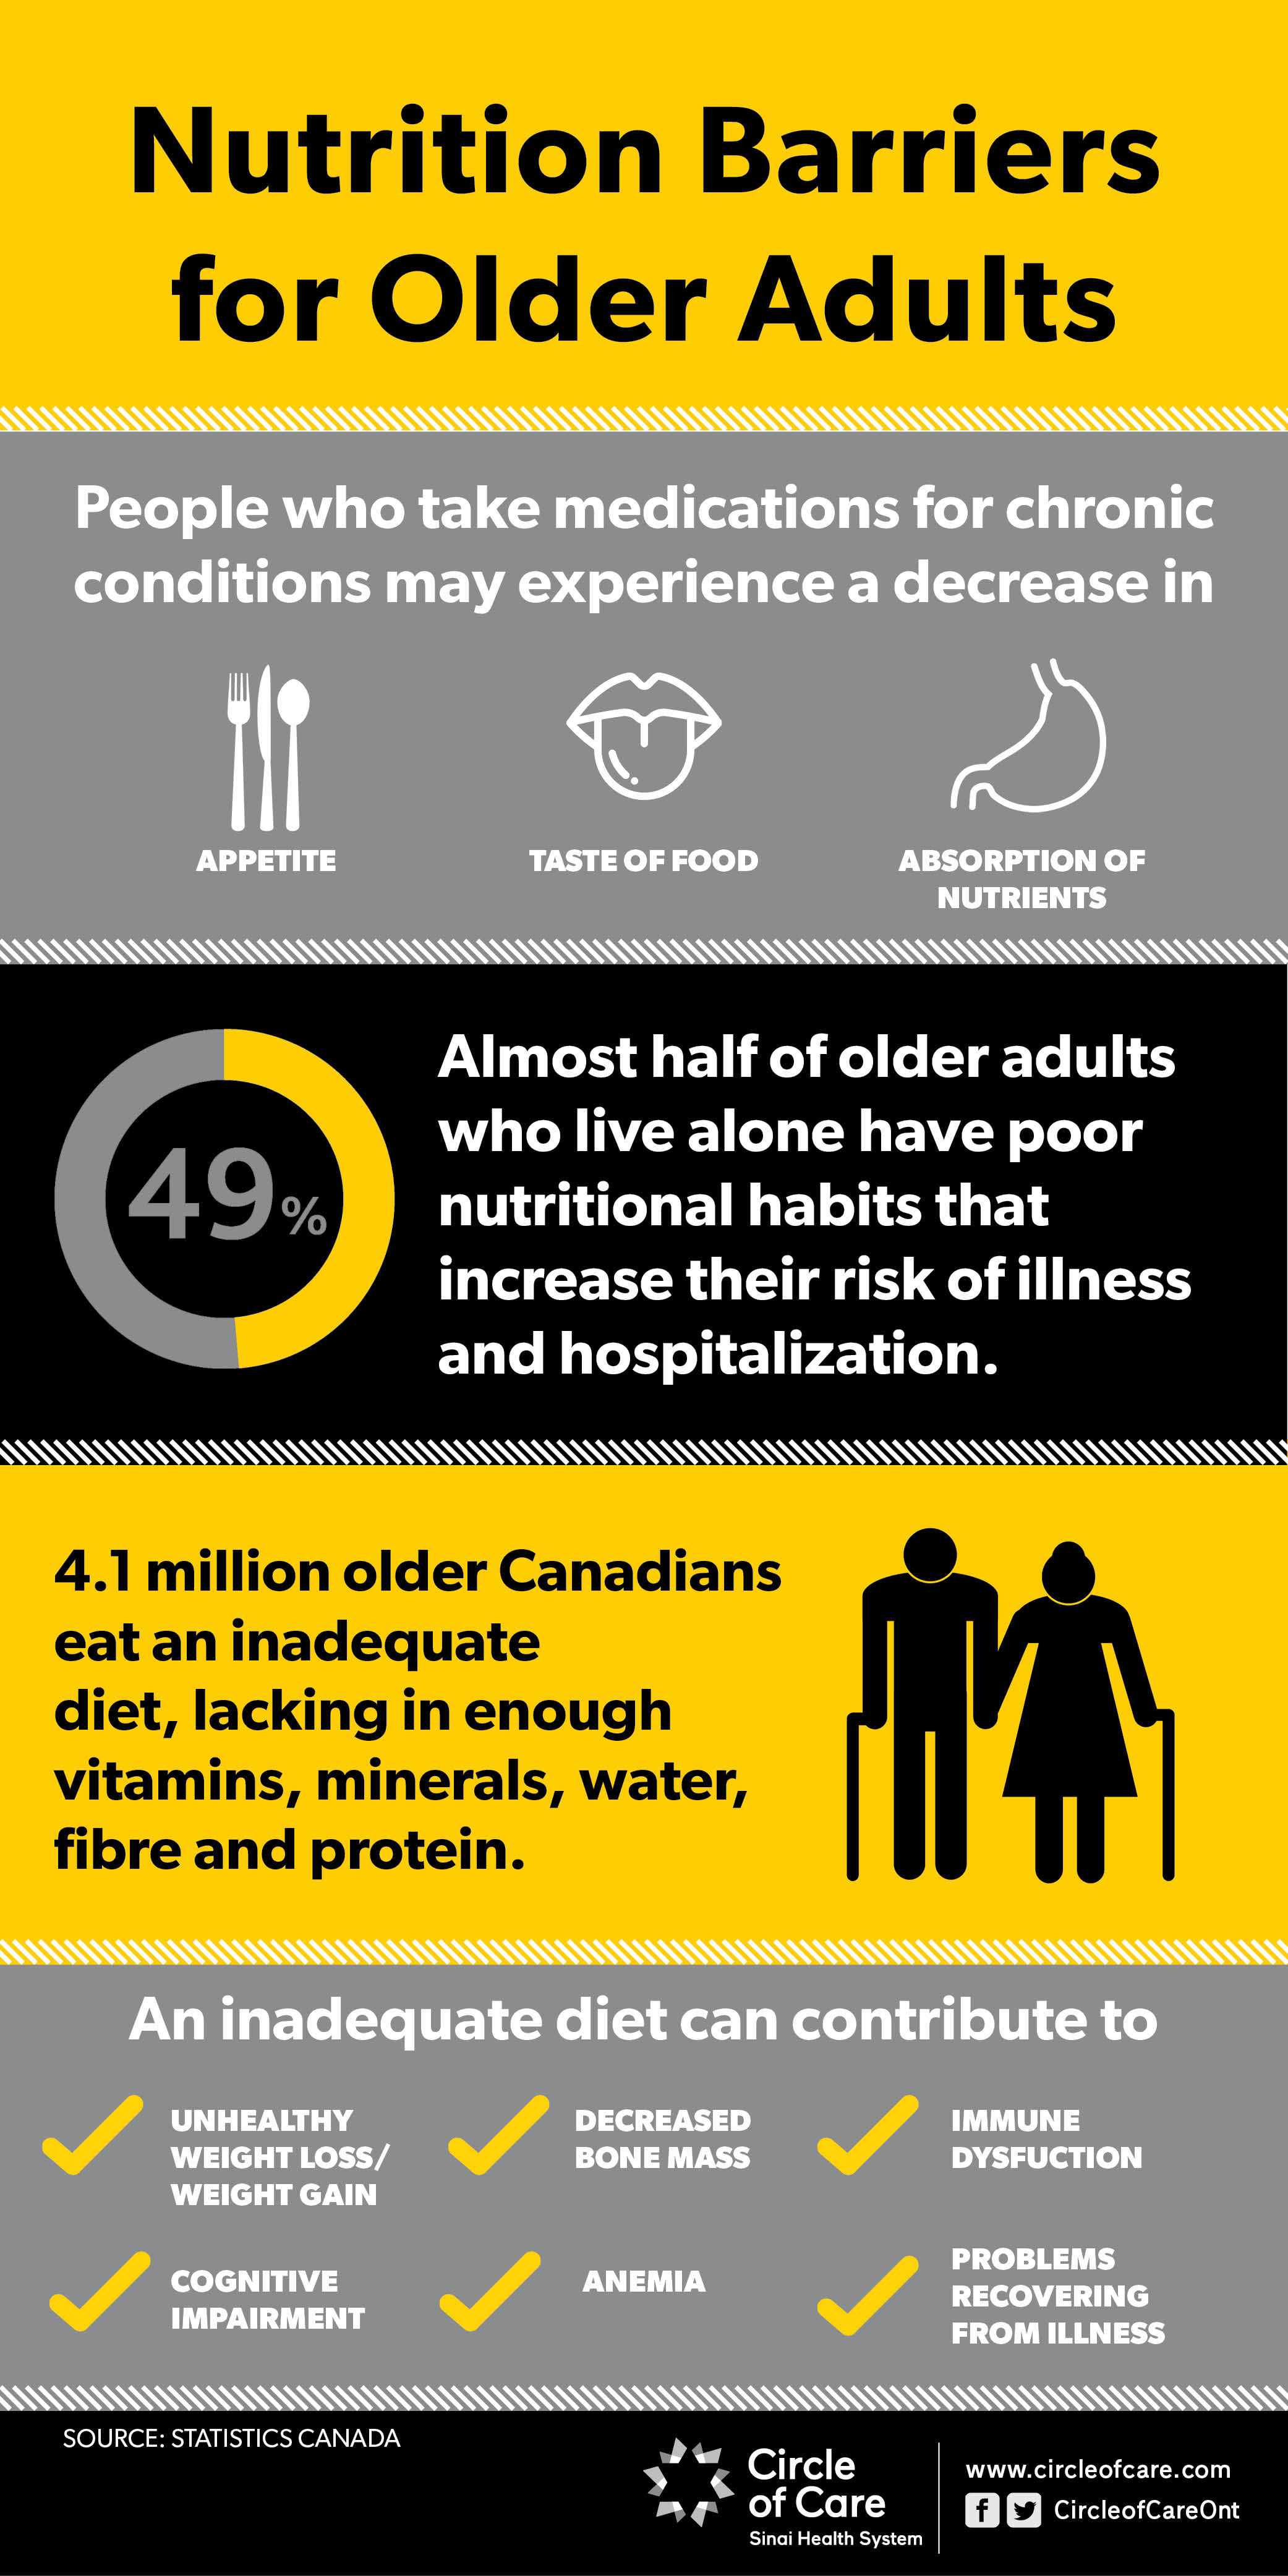 Infographic about nutrition barriers for Older Adults